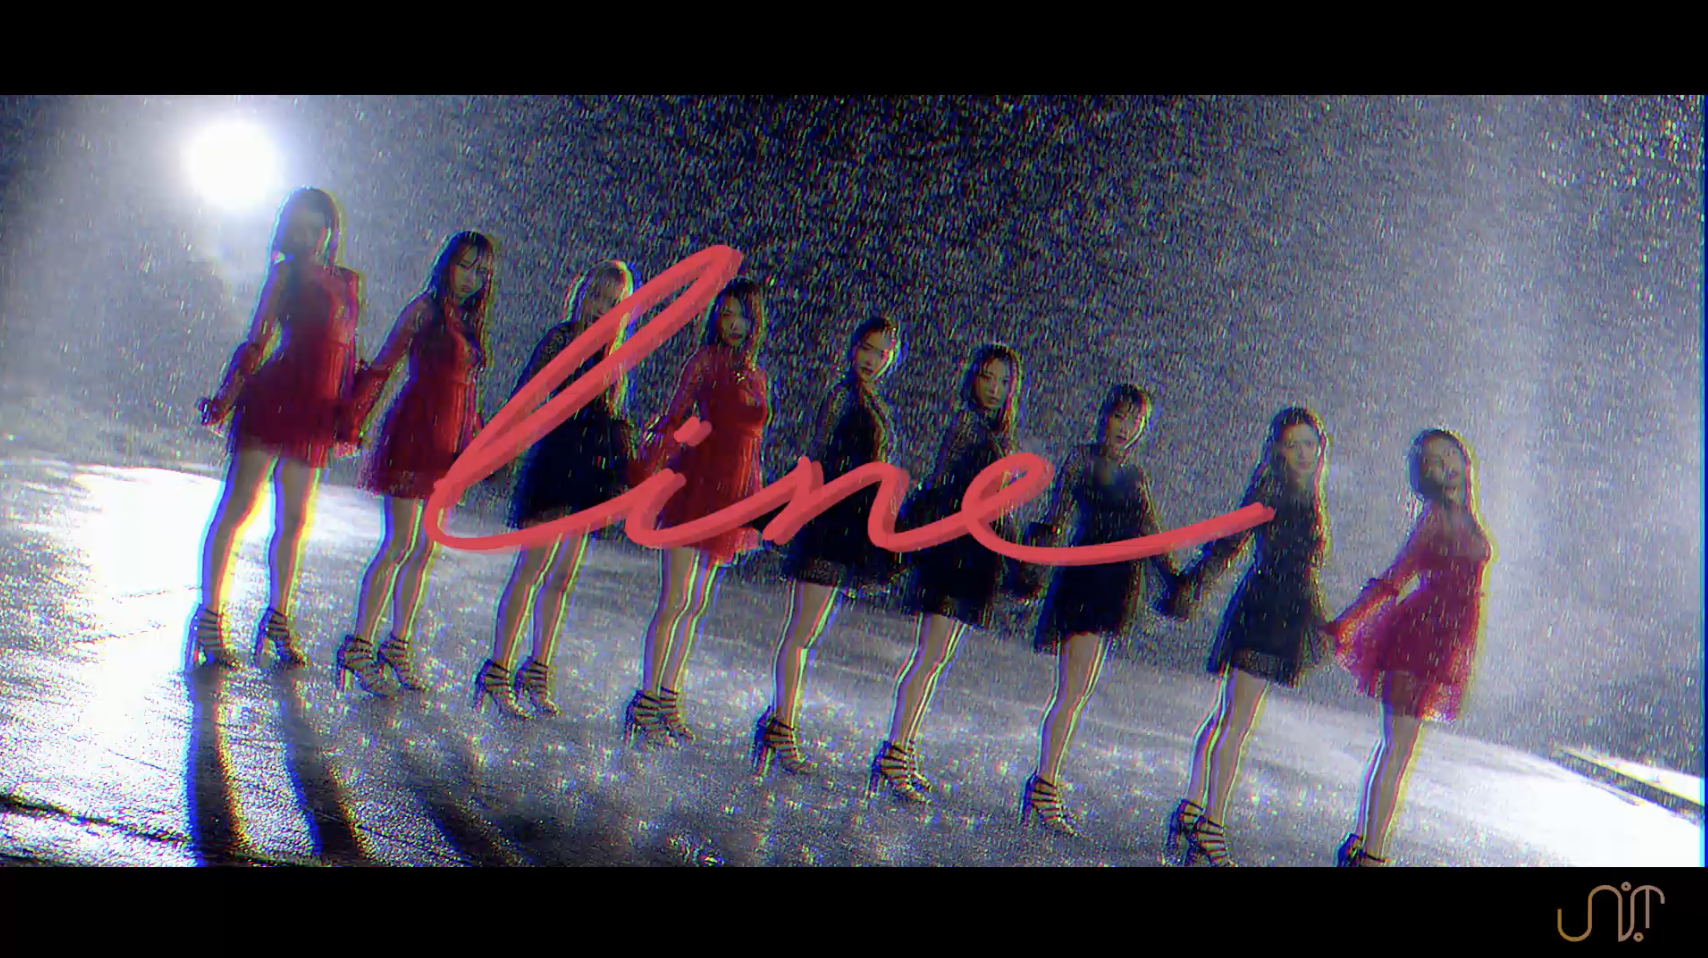 [선공개] 유니티(UNI.T) 넘어 (No More)Official Music Video